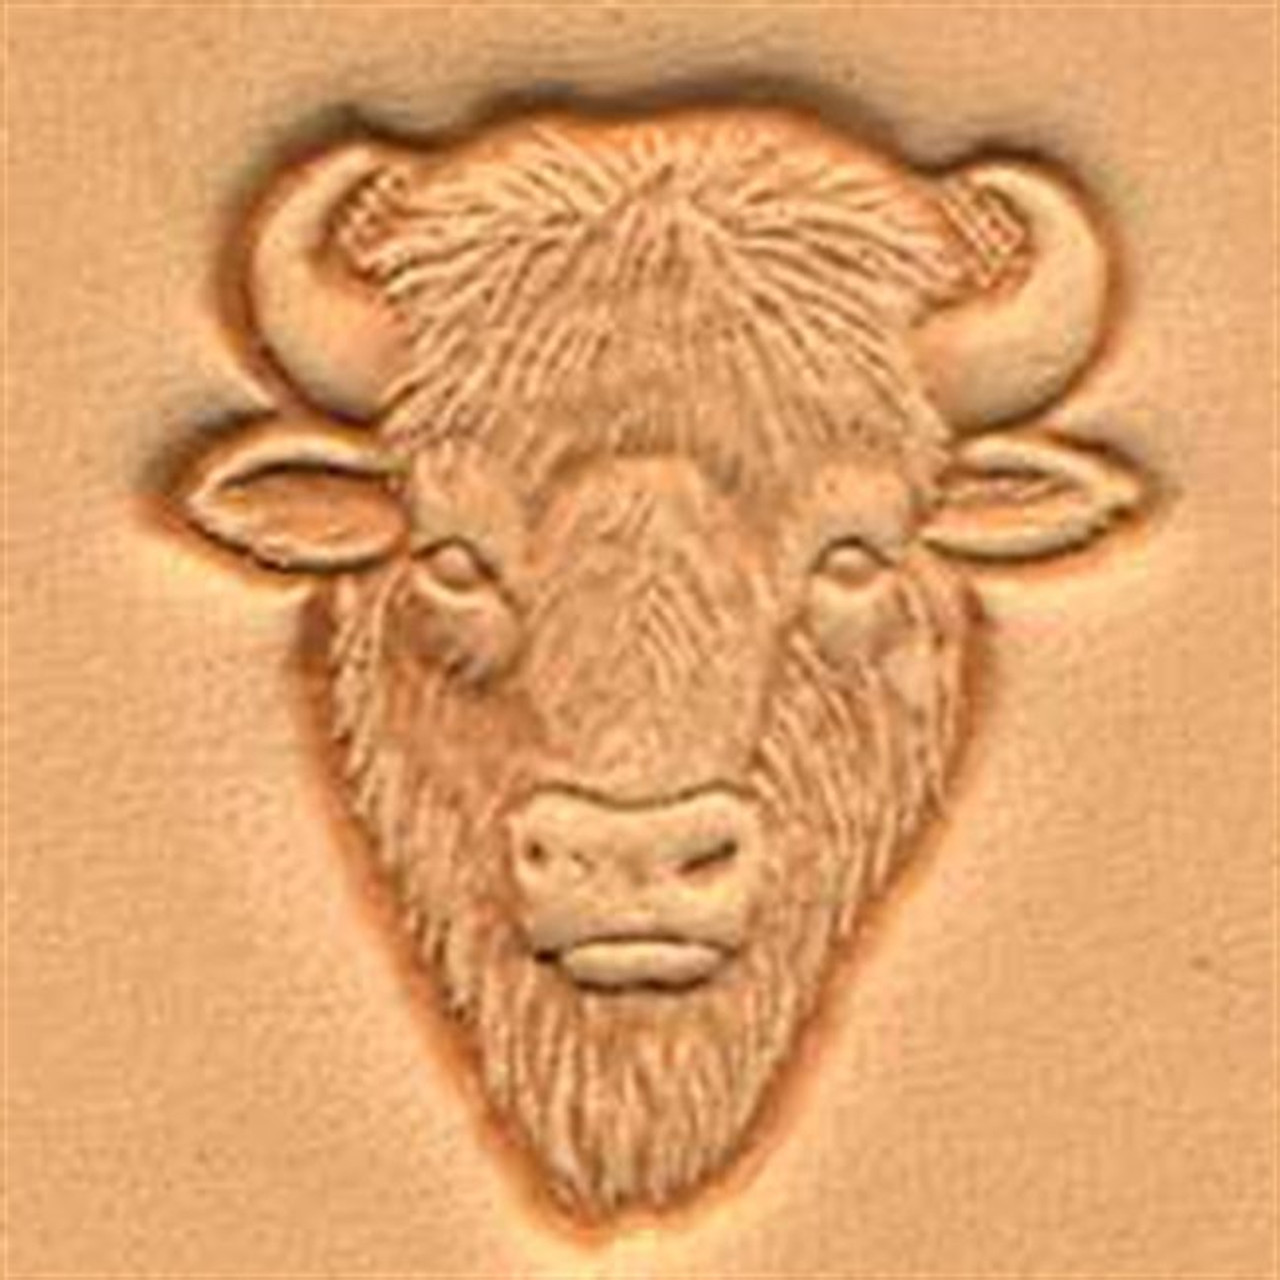 Craftool 3D Buffalo Head Stamp New 88458-00 by Tandy Leather